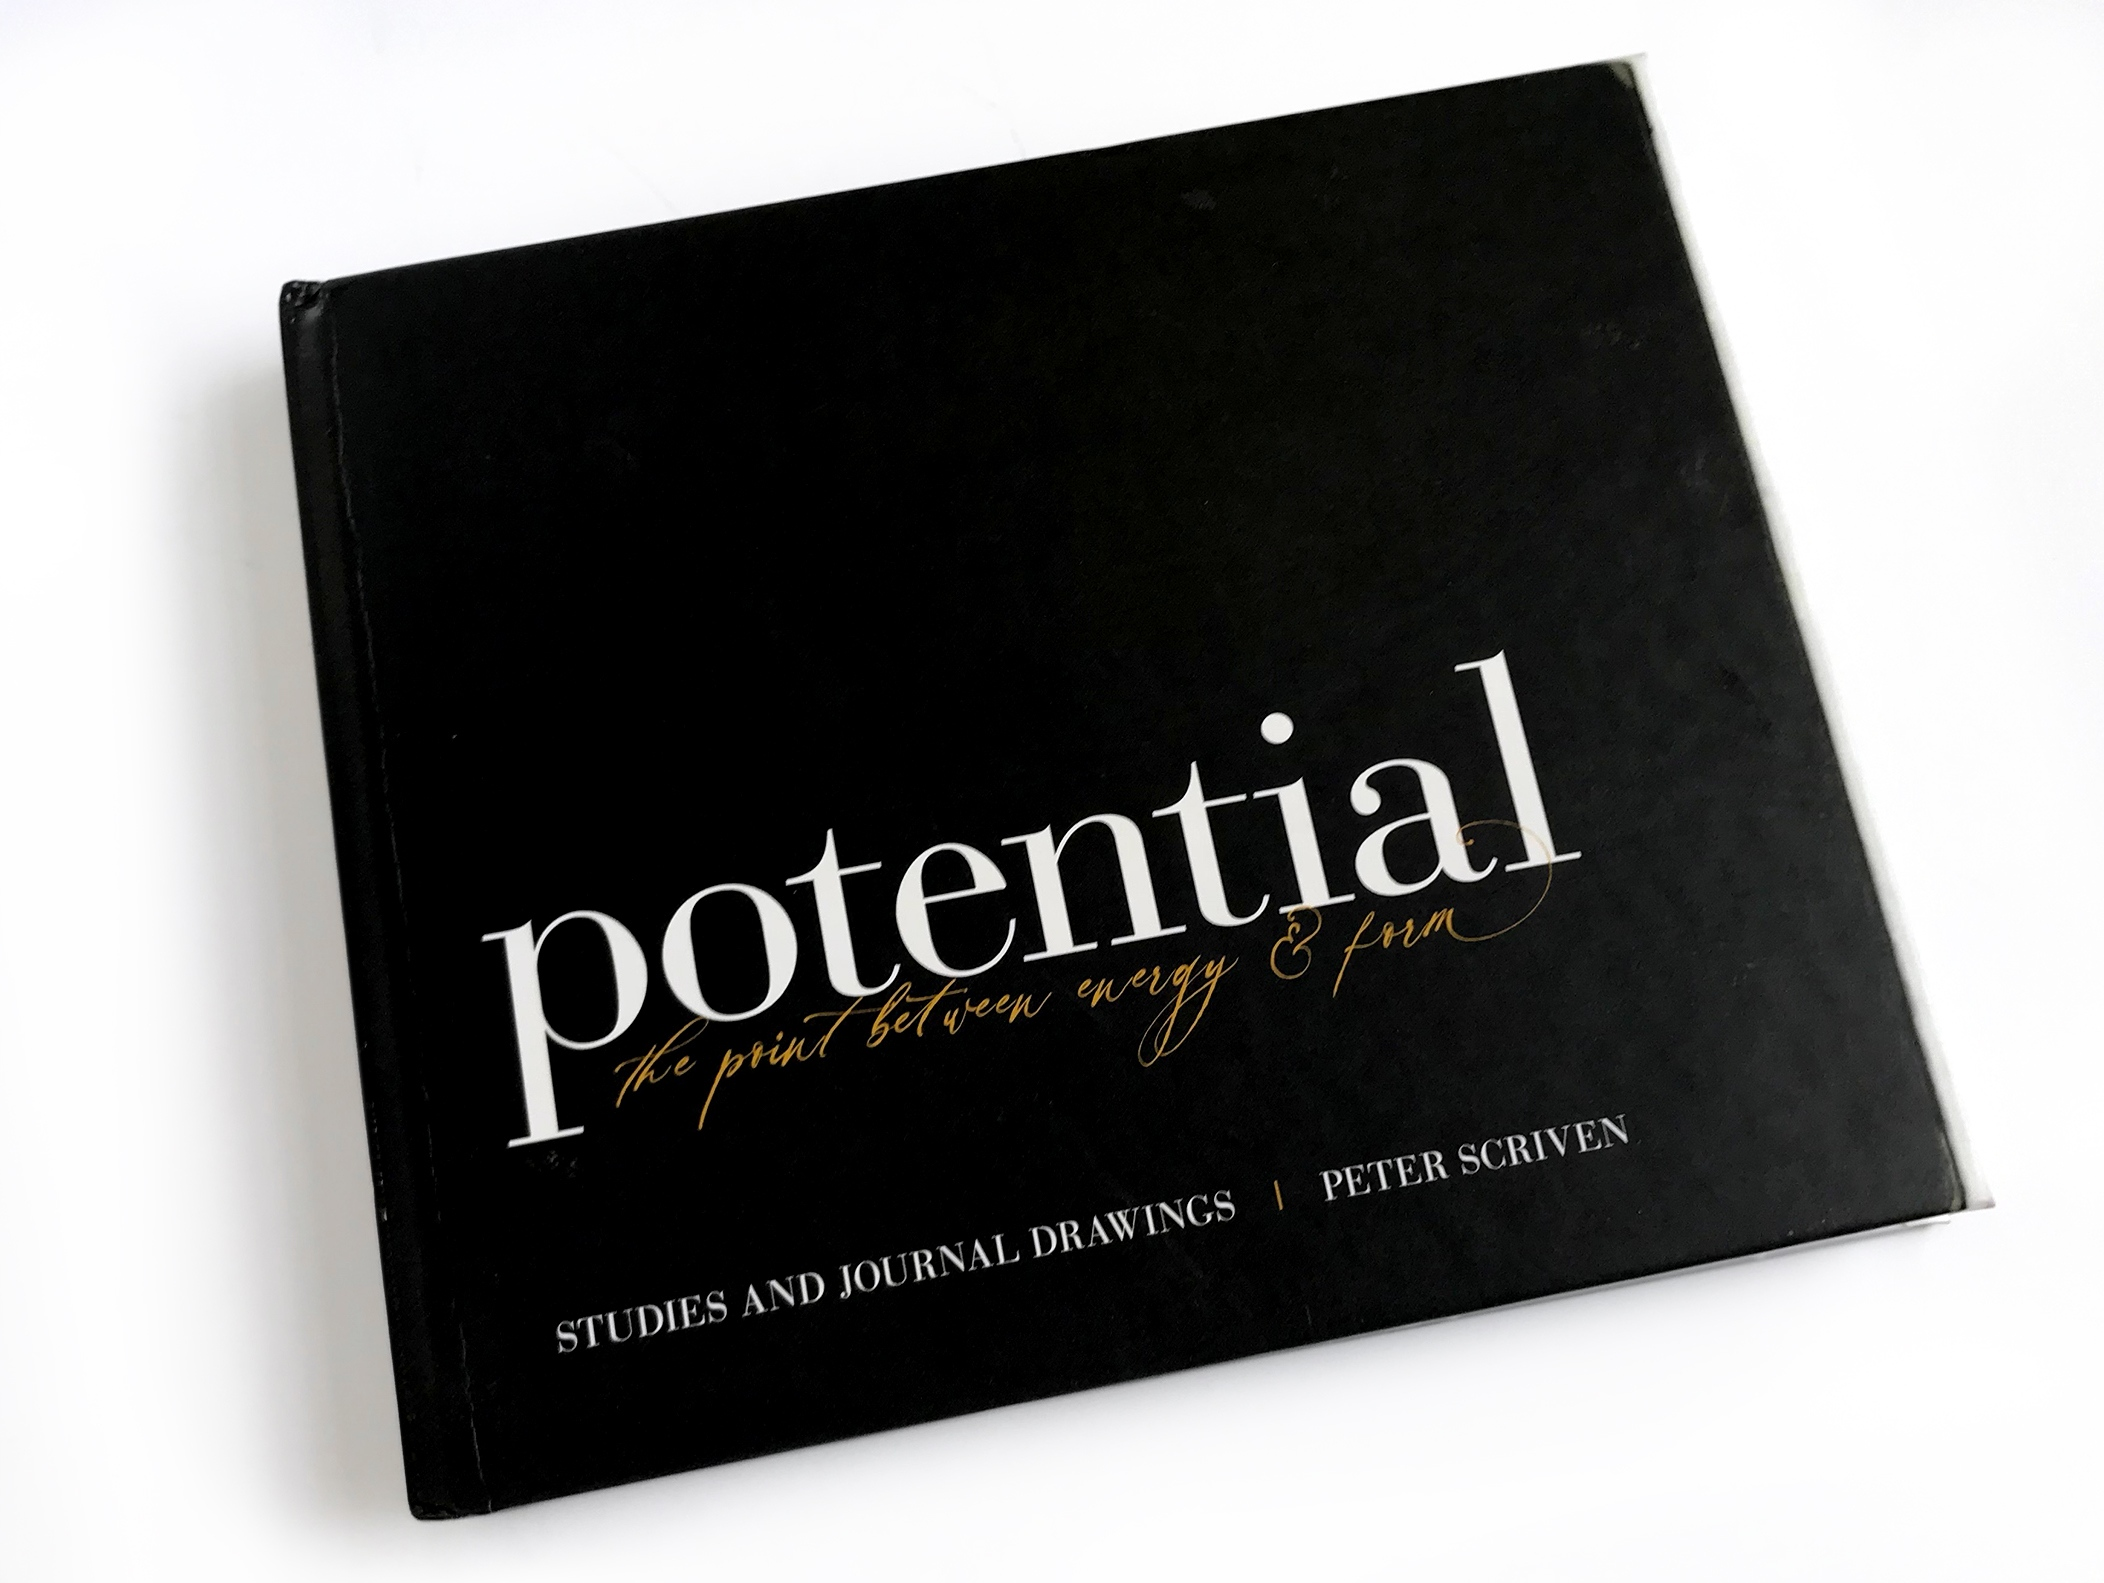 STUDIED: POTENTIAL